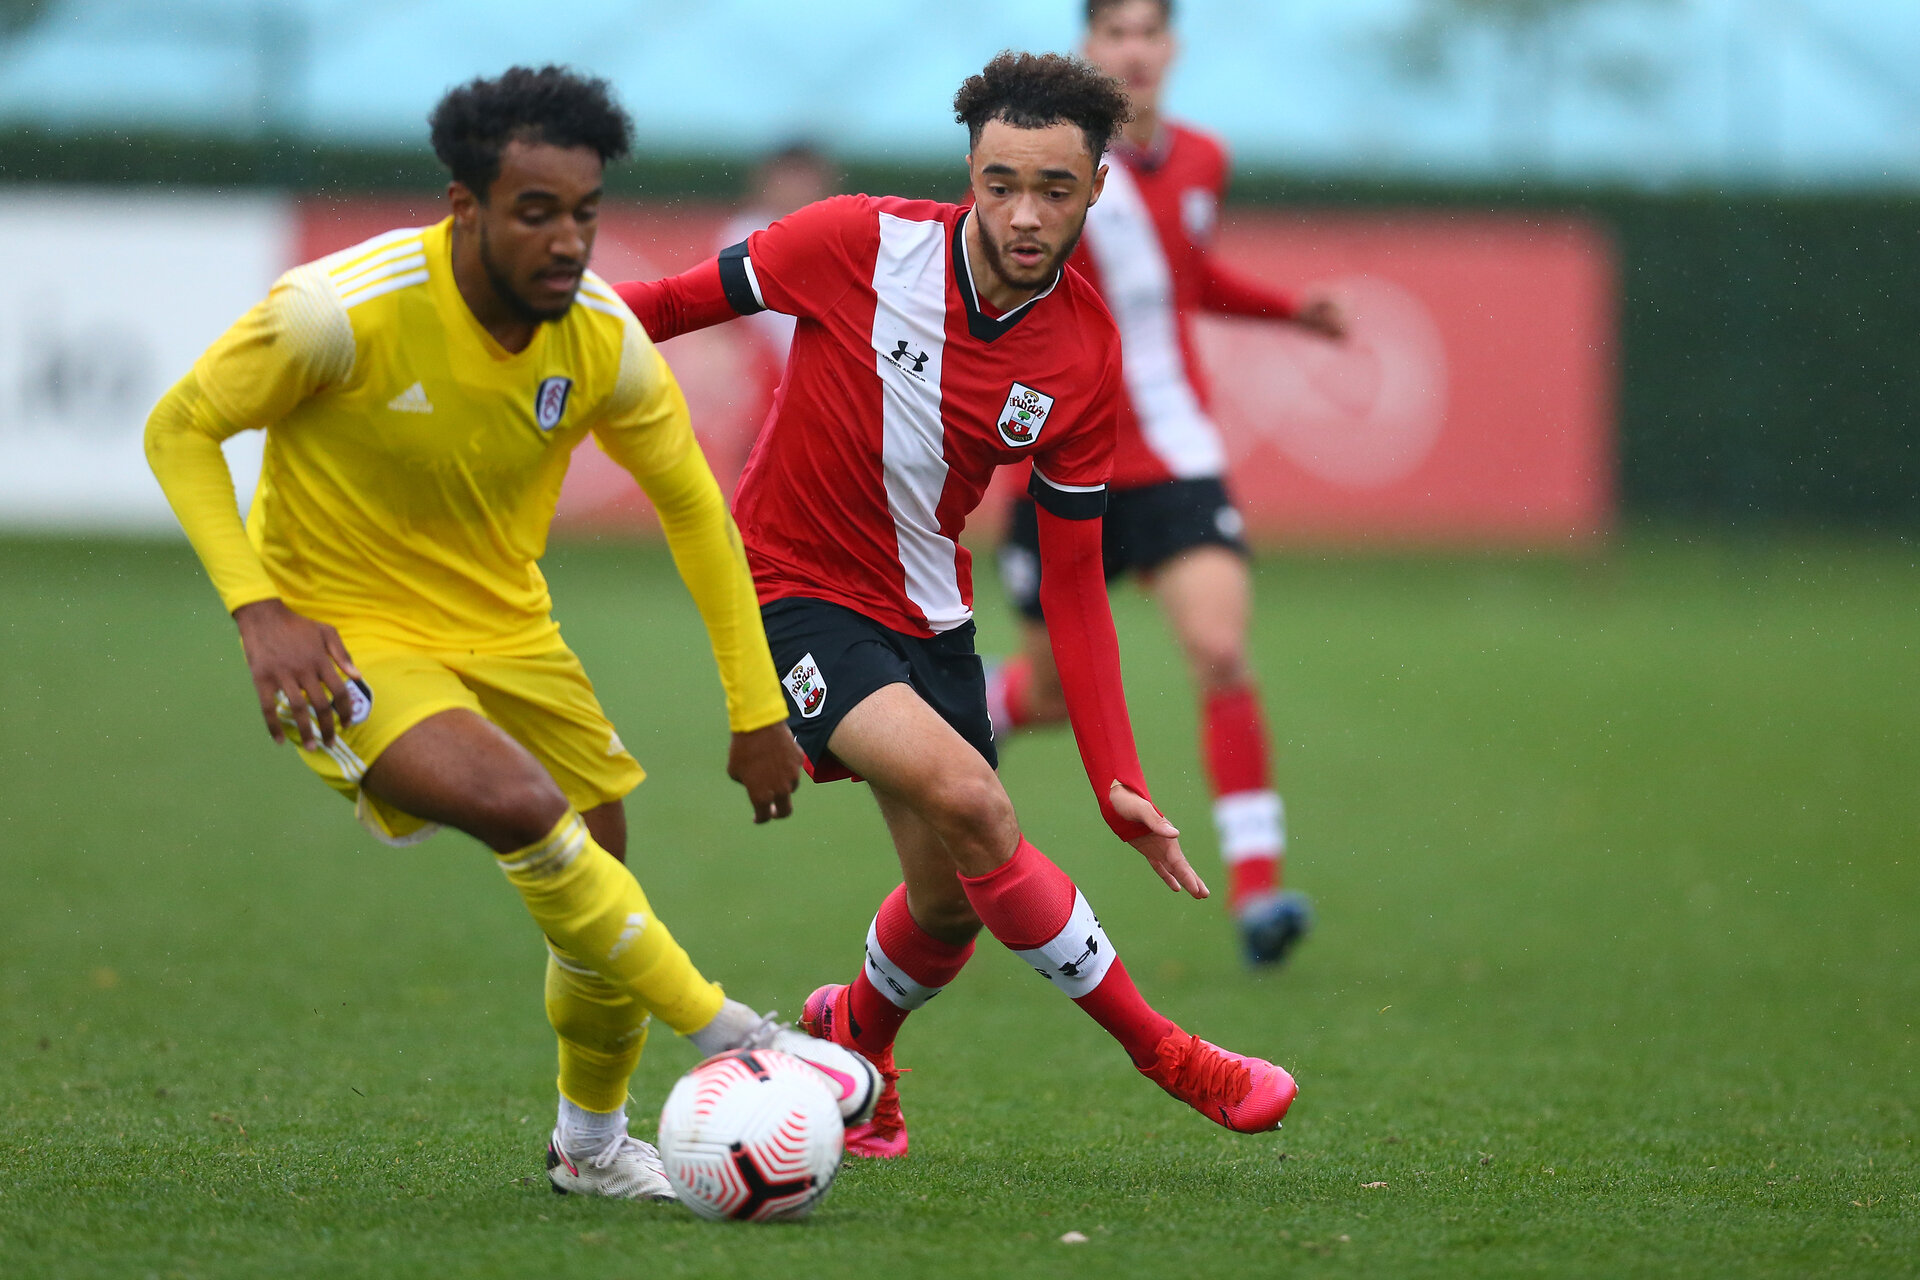 SOUTHAMPTON, ENGLAND - OCTOBER 31: Jayden Smith(R) of Southampton during the Premier League U18s match between Southampton U18s and Fulham FC at Staplewood Training Ground on October 31, 2020 in Southampton, England. (Photo by Isabelle Field/Southamtpon FC)